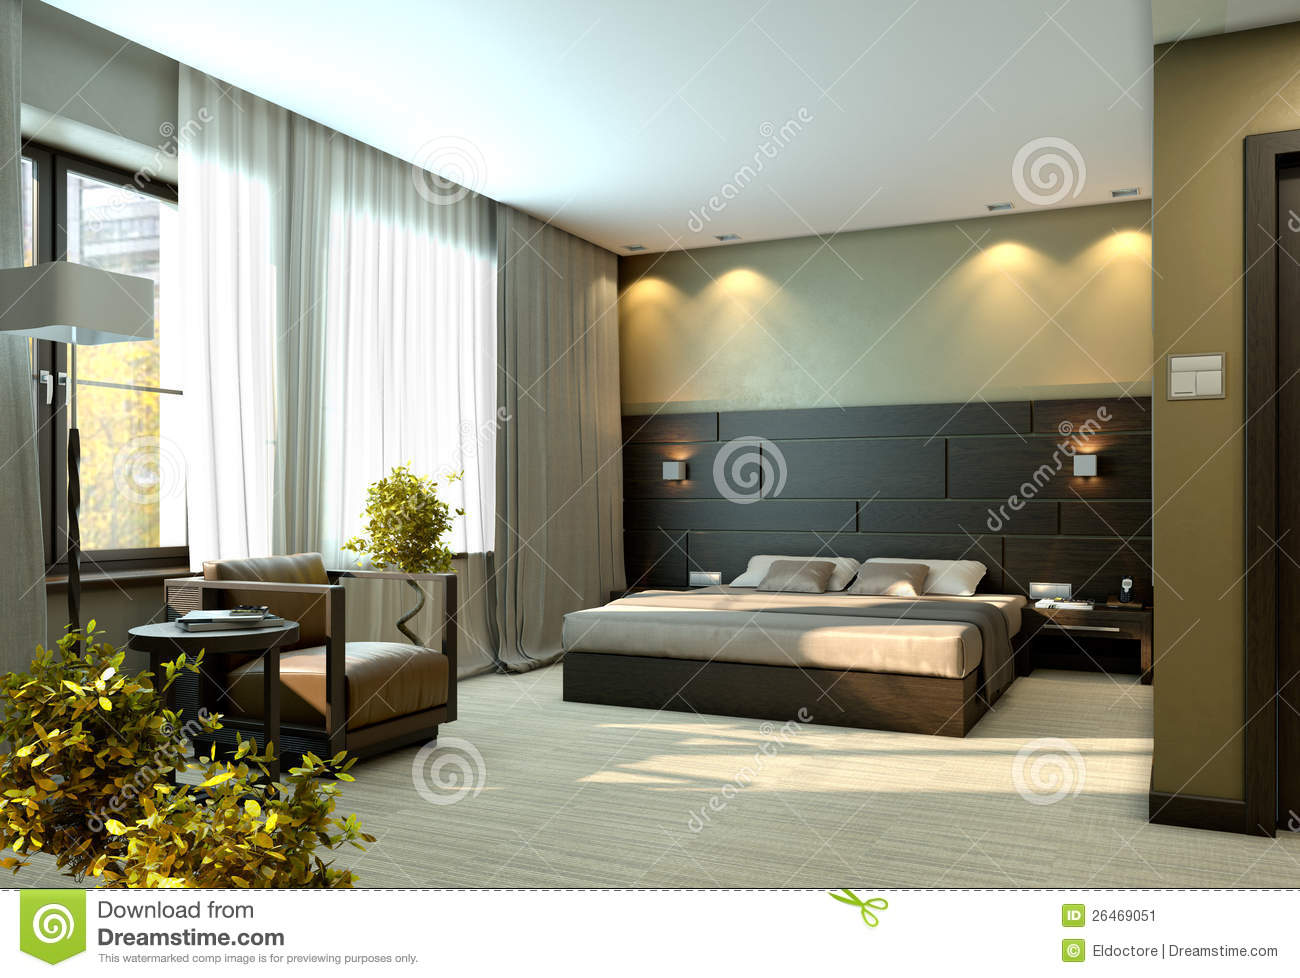 Chambre Coucher Beige De Luxe Moderne Image Stock Image 26469051